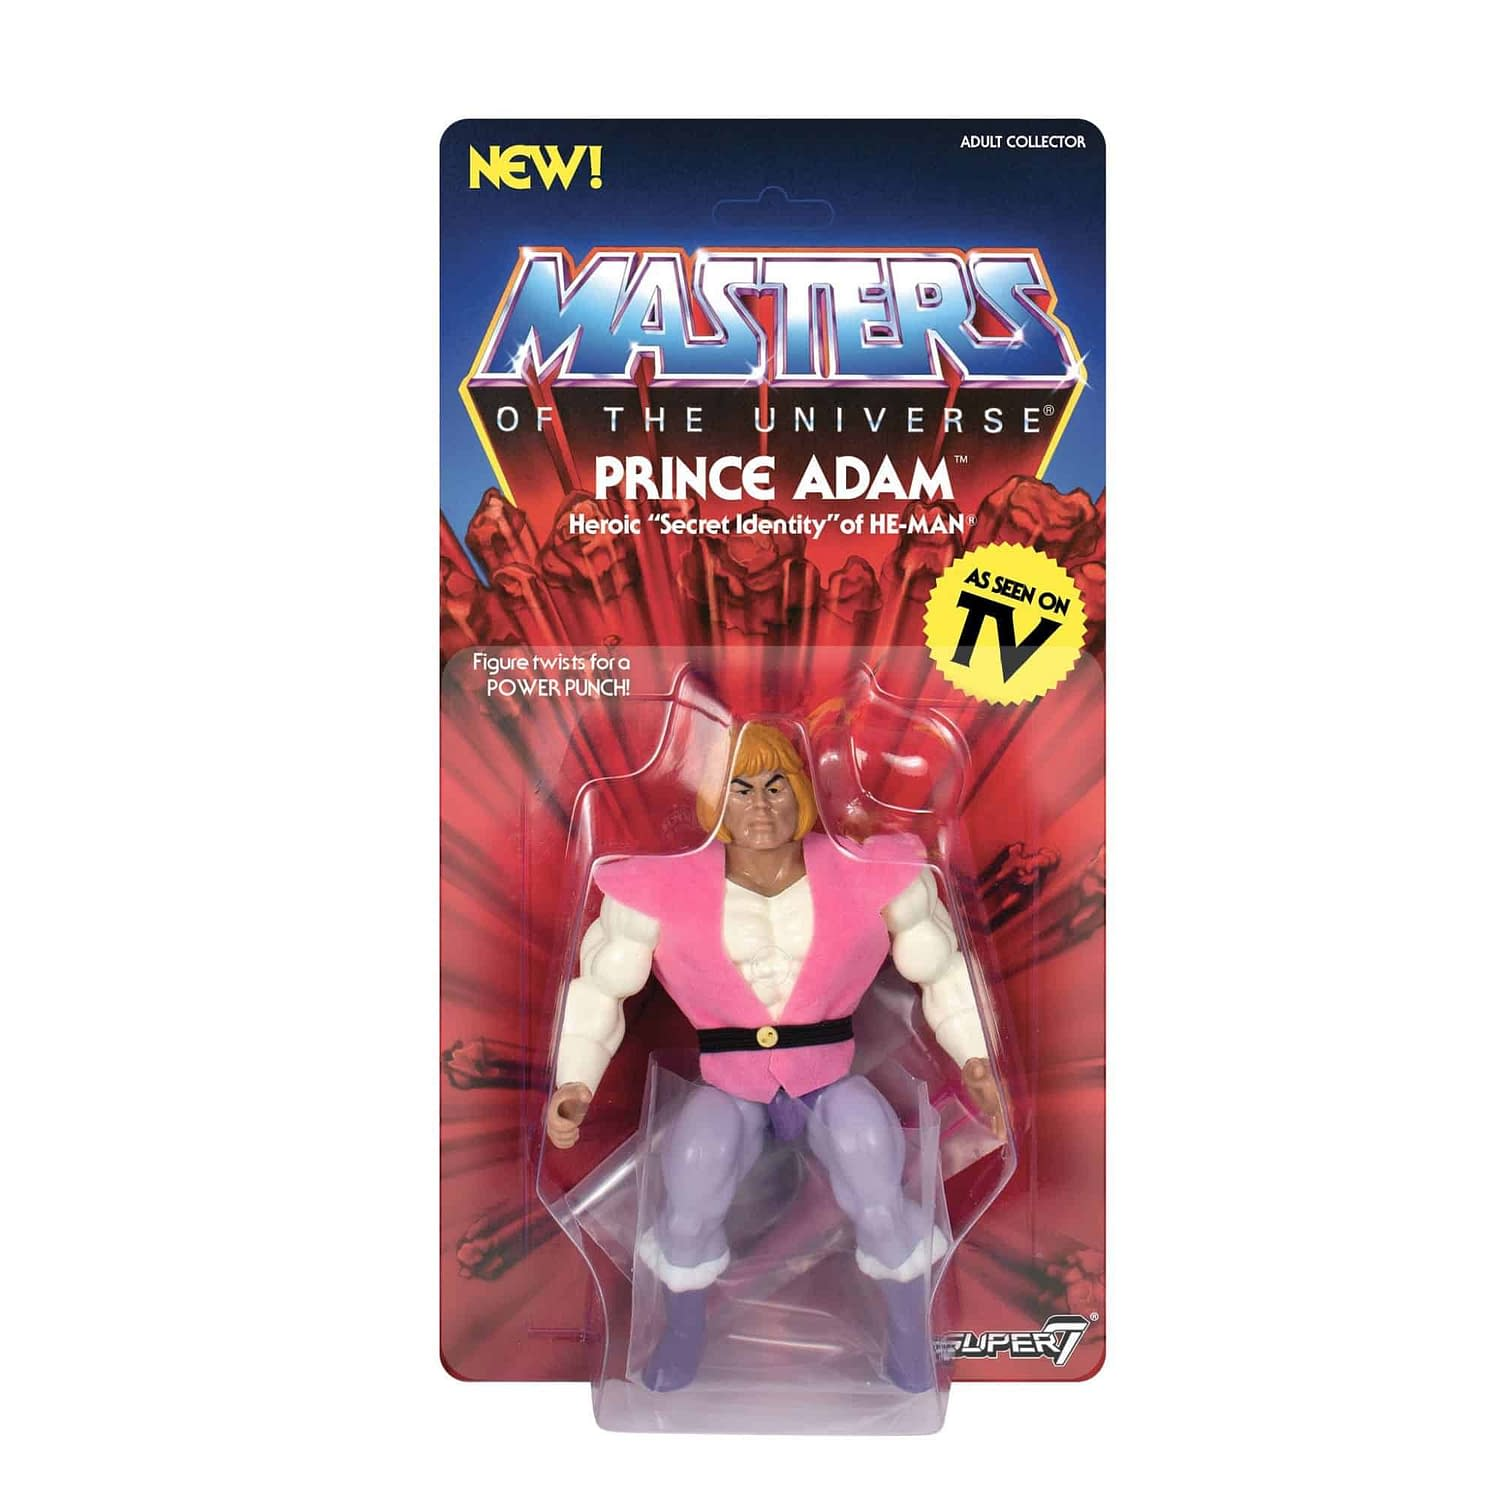 Masters of the Universe Vintage Prince Adam